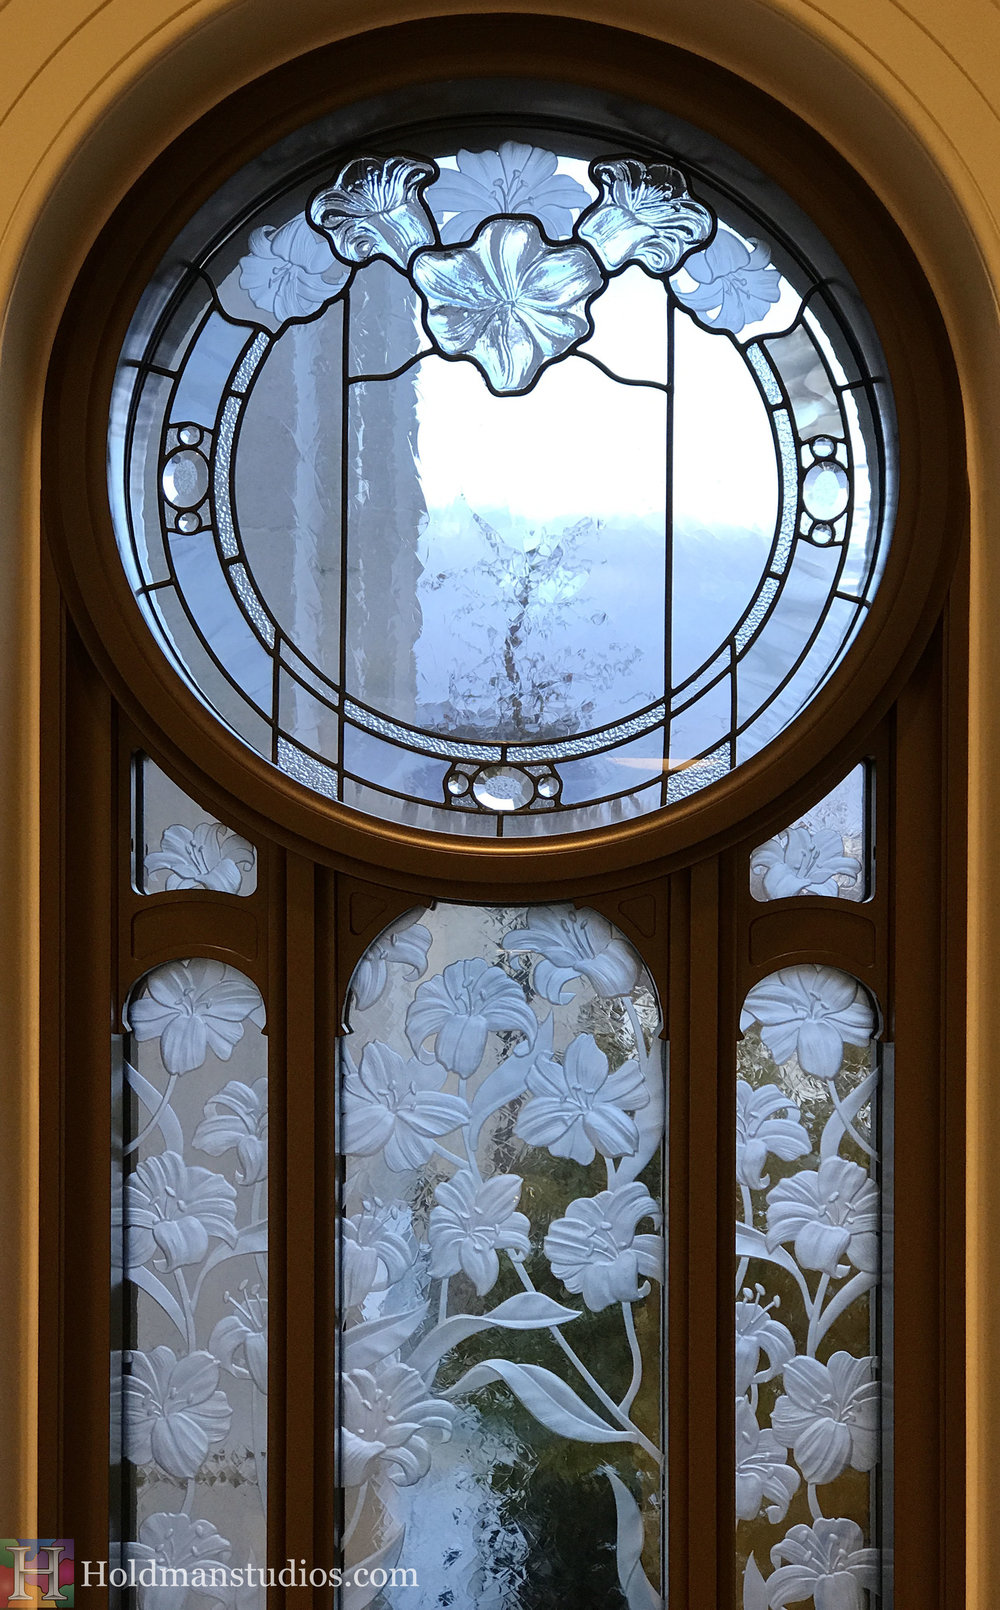 Holdman-Studios-Stained-Etched-Cast-Glass-Paris-LDS-Temple-Martagon-Madonna-Lily-Flowers-Buds-Leaves-Round-Window.jpg